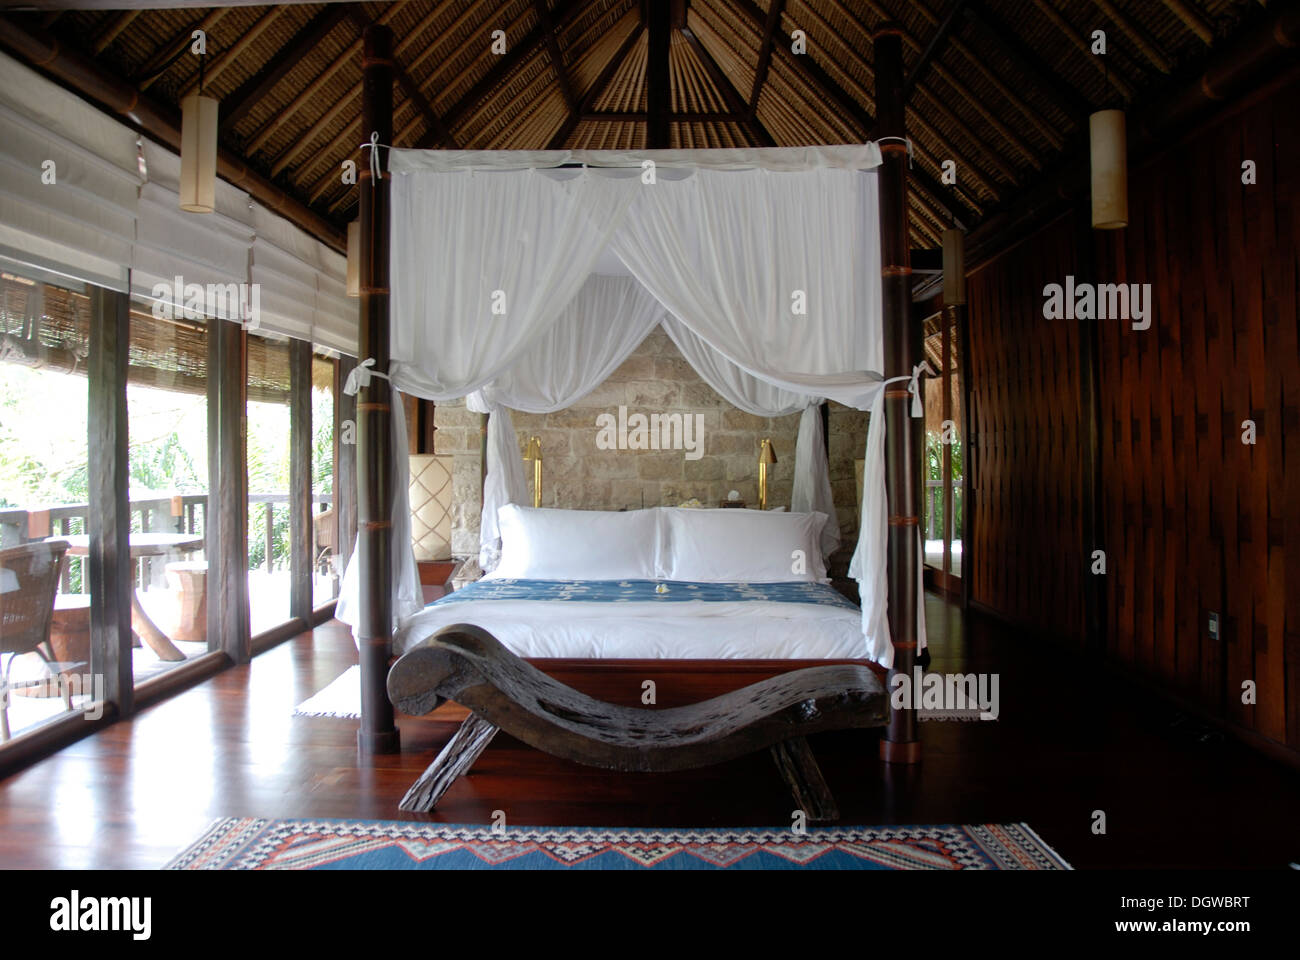 Hotel, bedroom with furnishings in a classy lodge, Como Shambhala Resort in Ubud, Bali, Indonesia, Southeast Asia, Asia - Stock Image